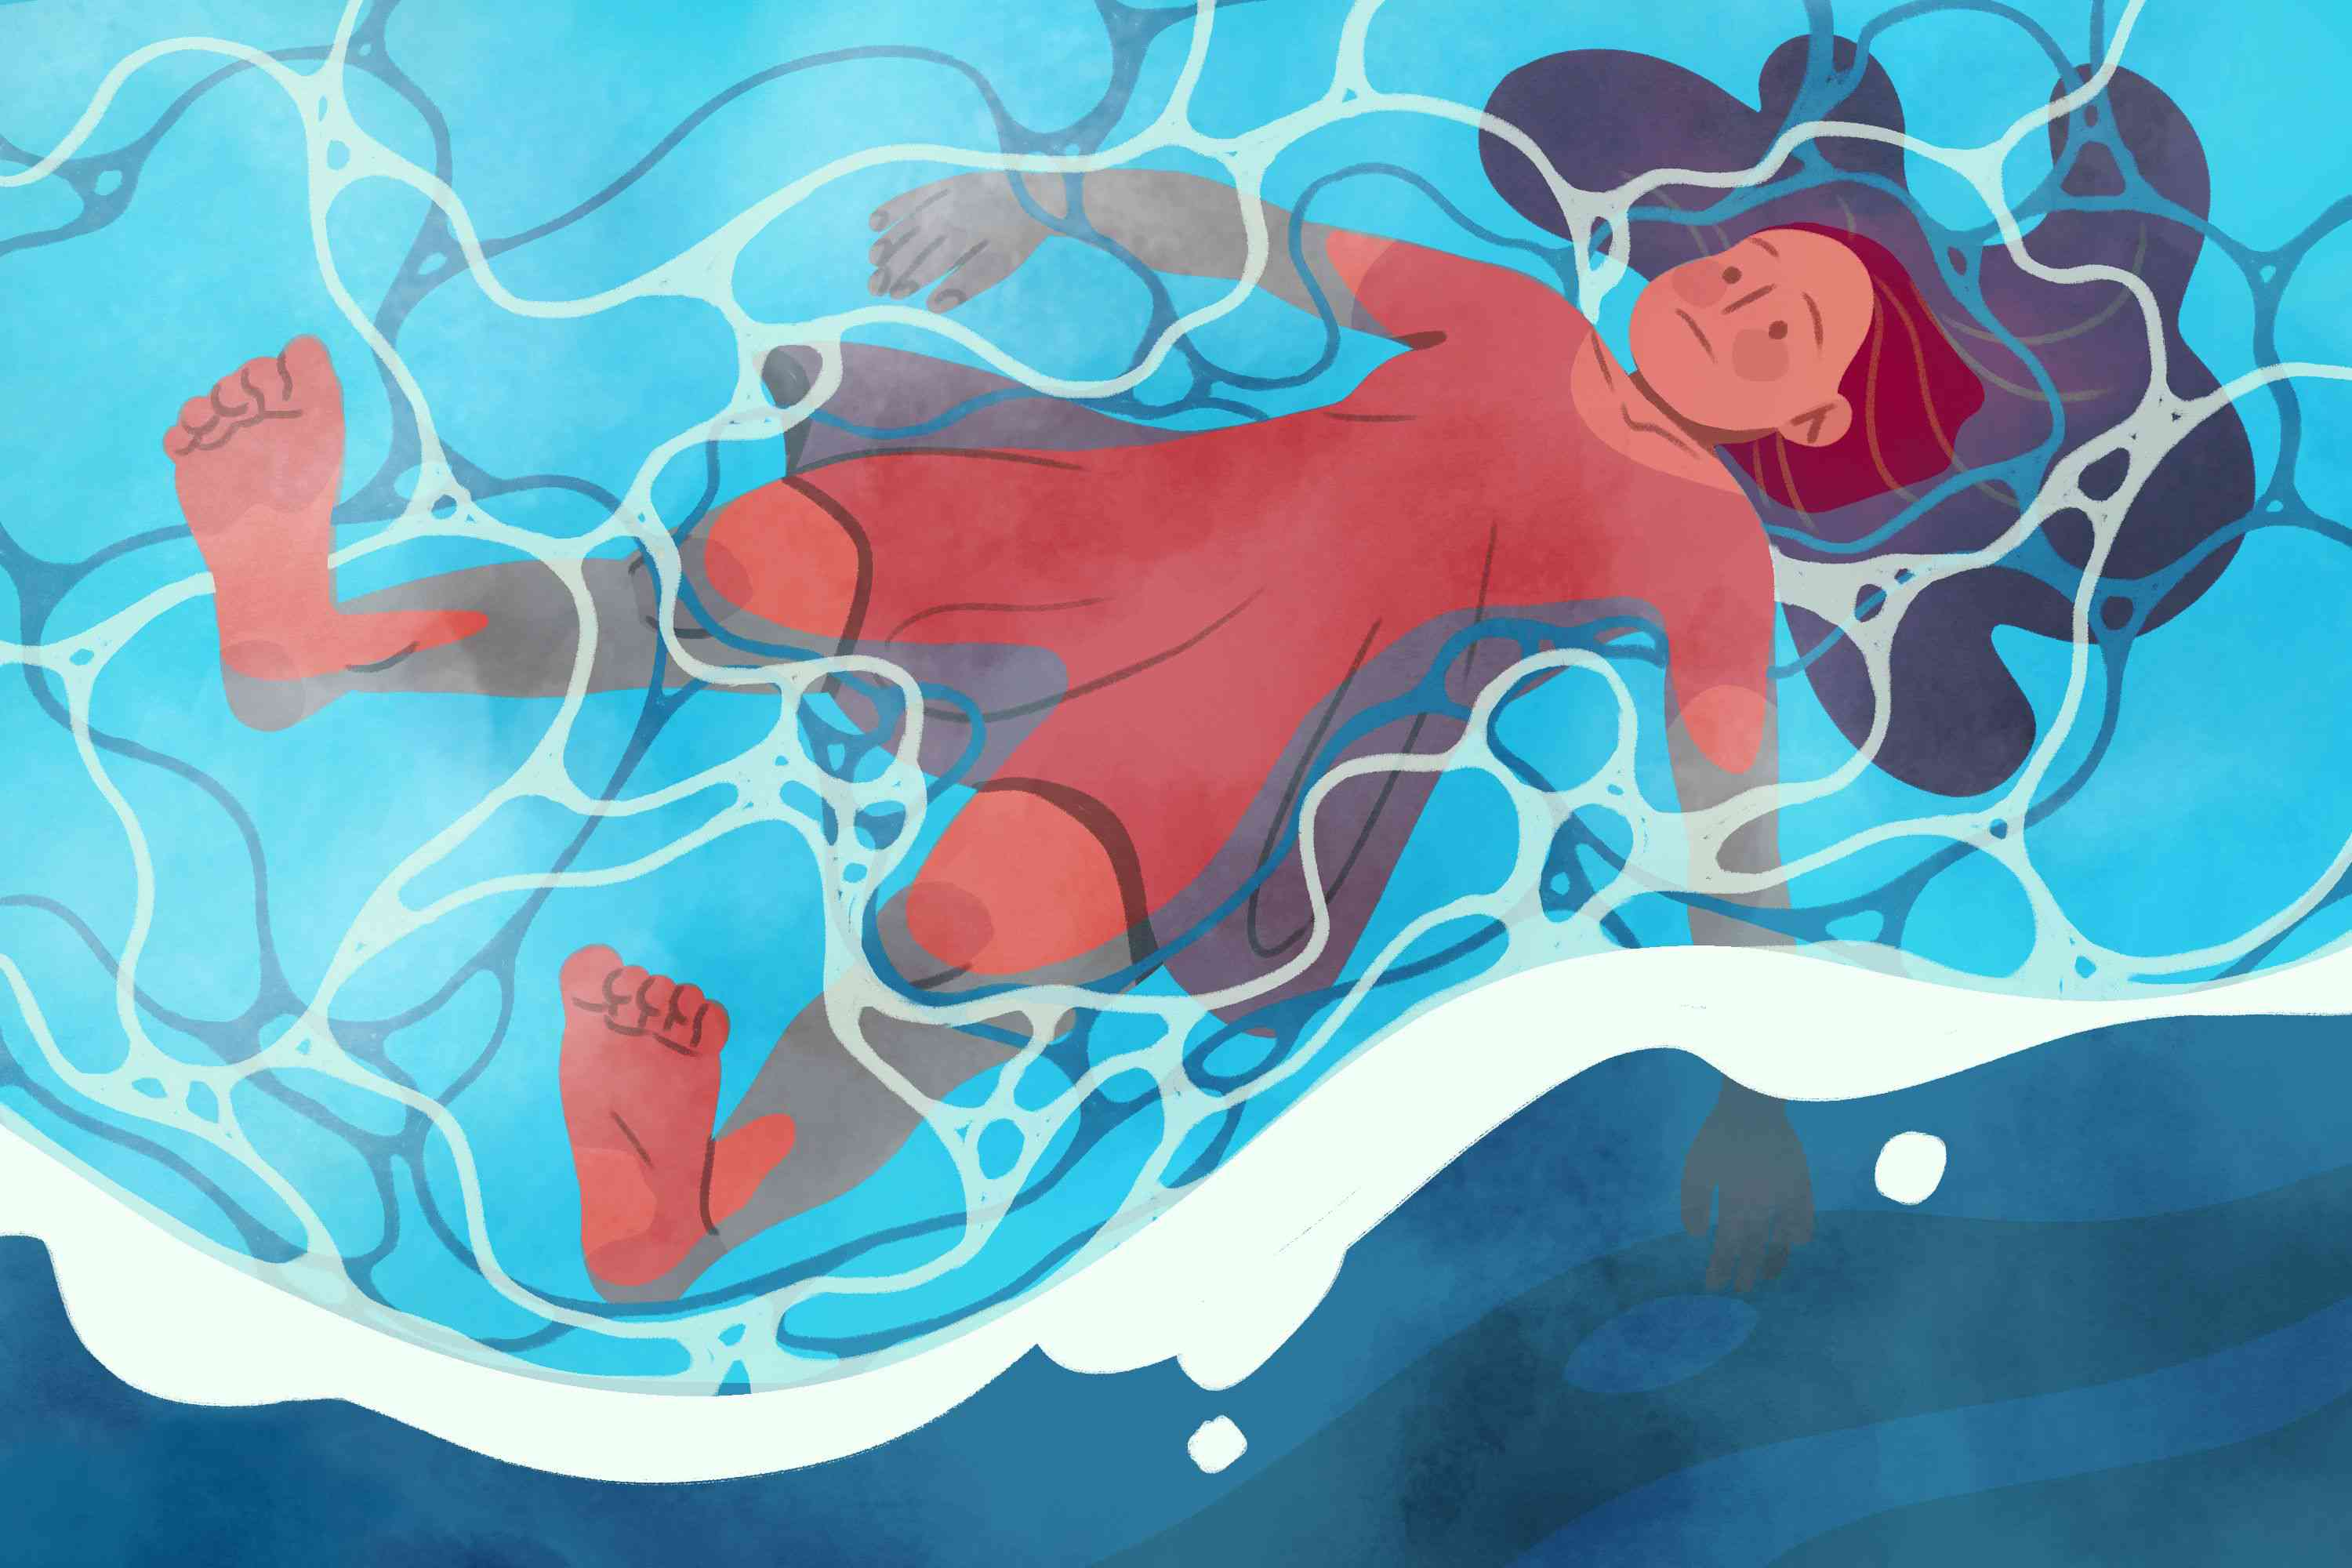 Person lying in a pool of water